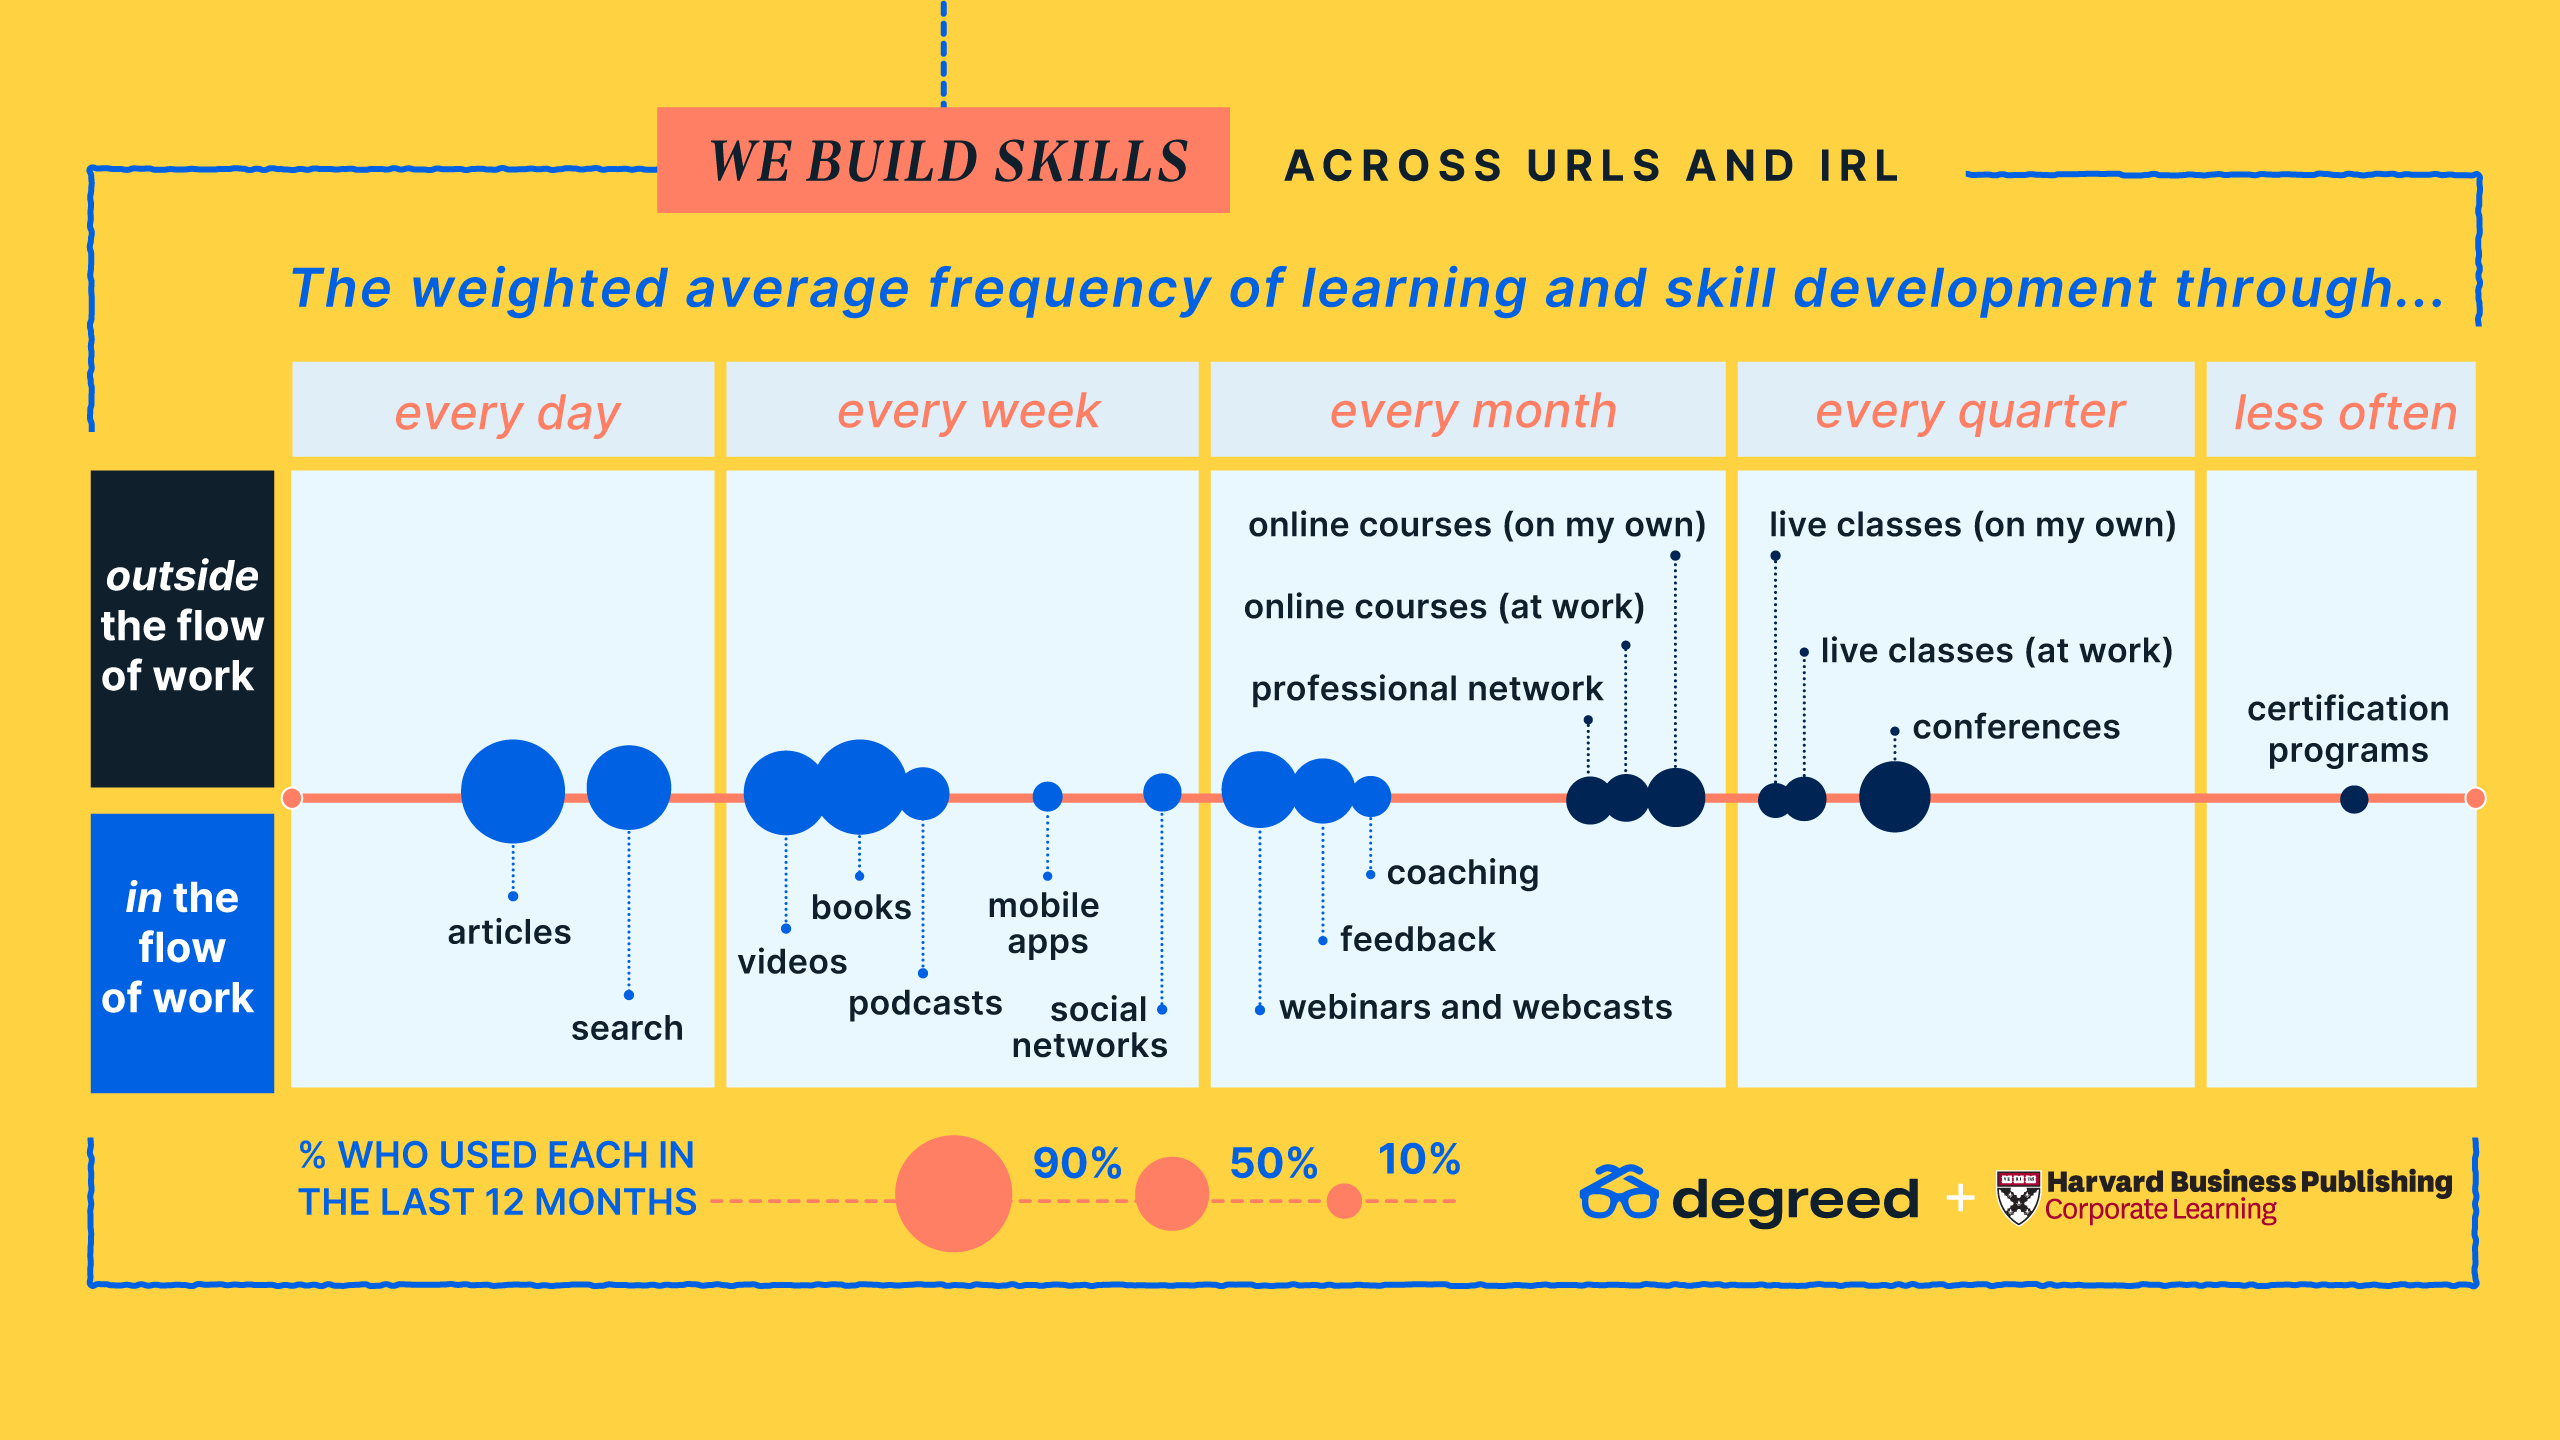 We Build Skills Across URLS and IRL with Experiential Learning at Work